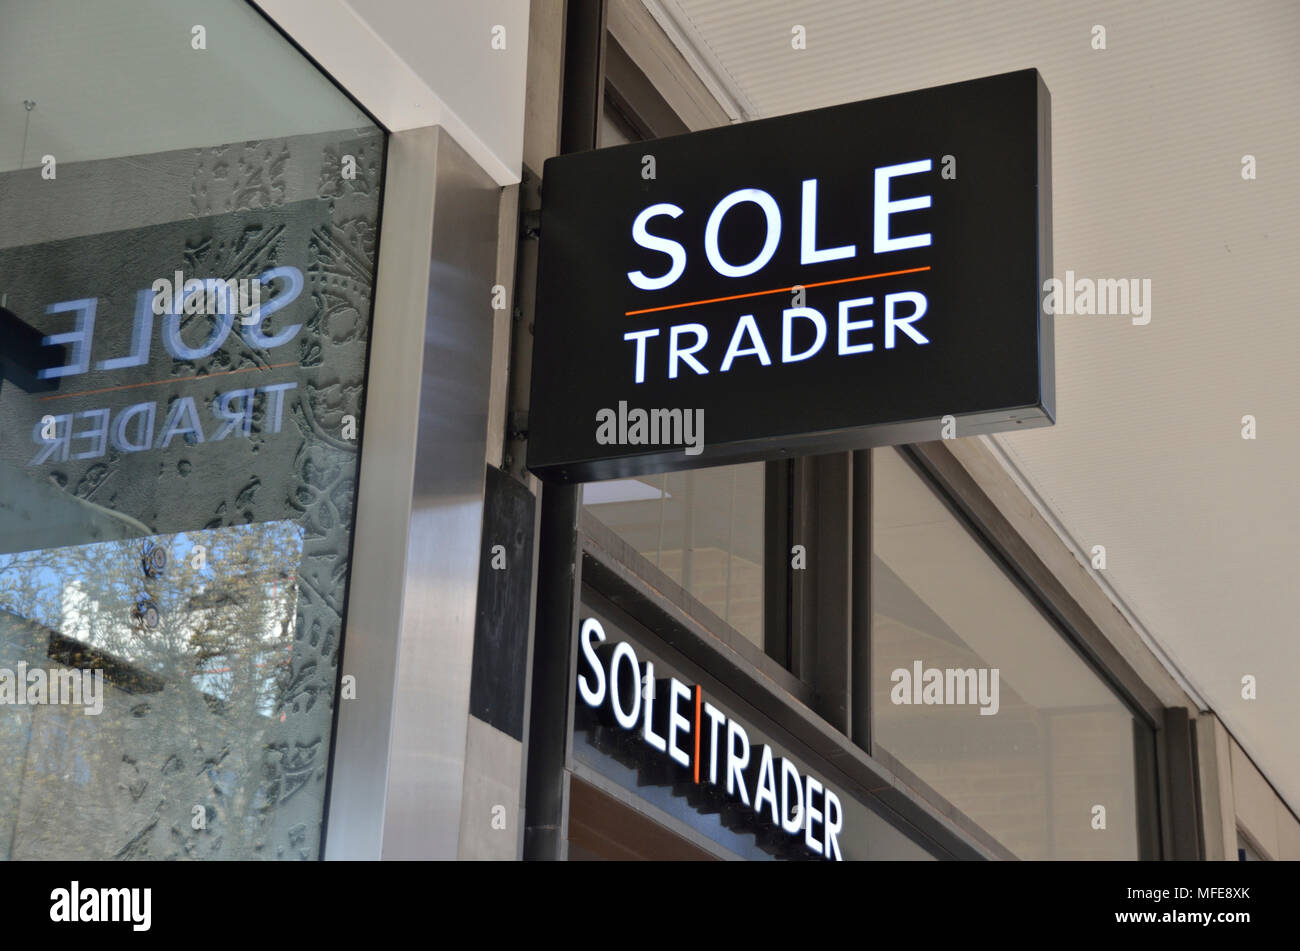 Sole Trader store sign in Oxford Street, London, UK. - Stock Image